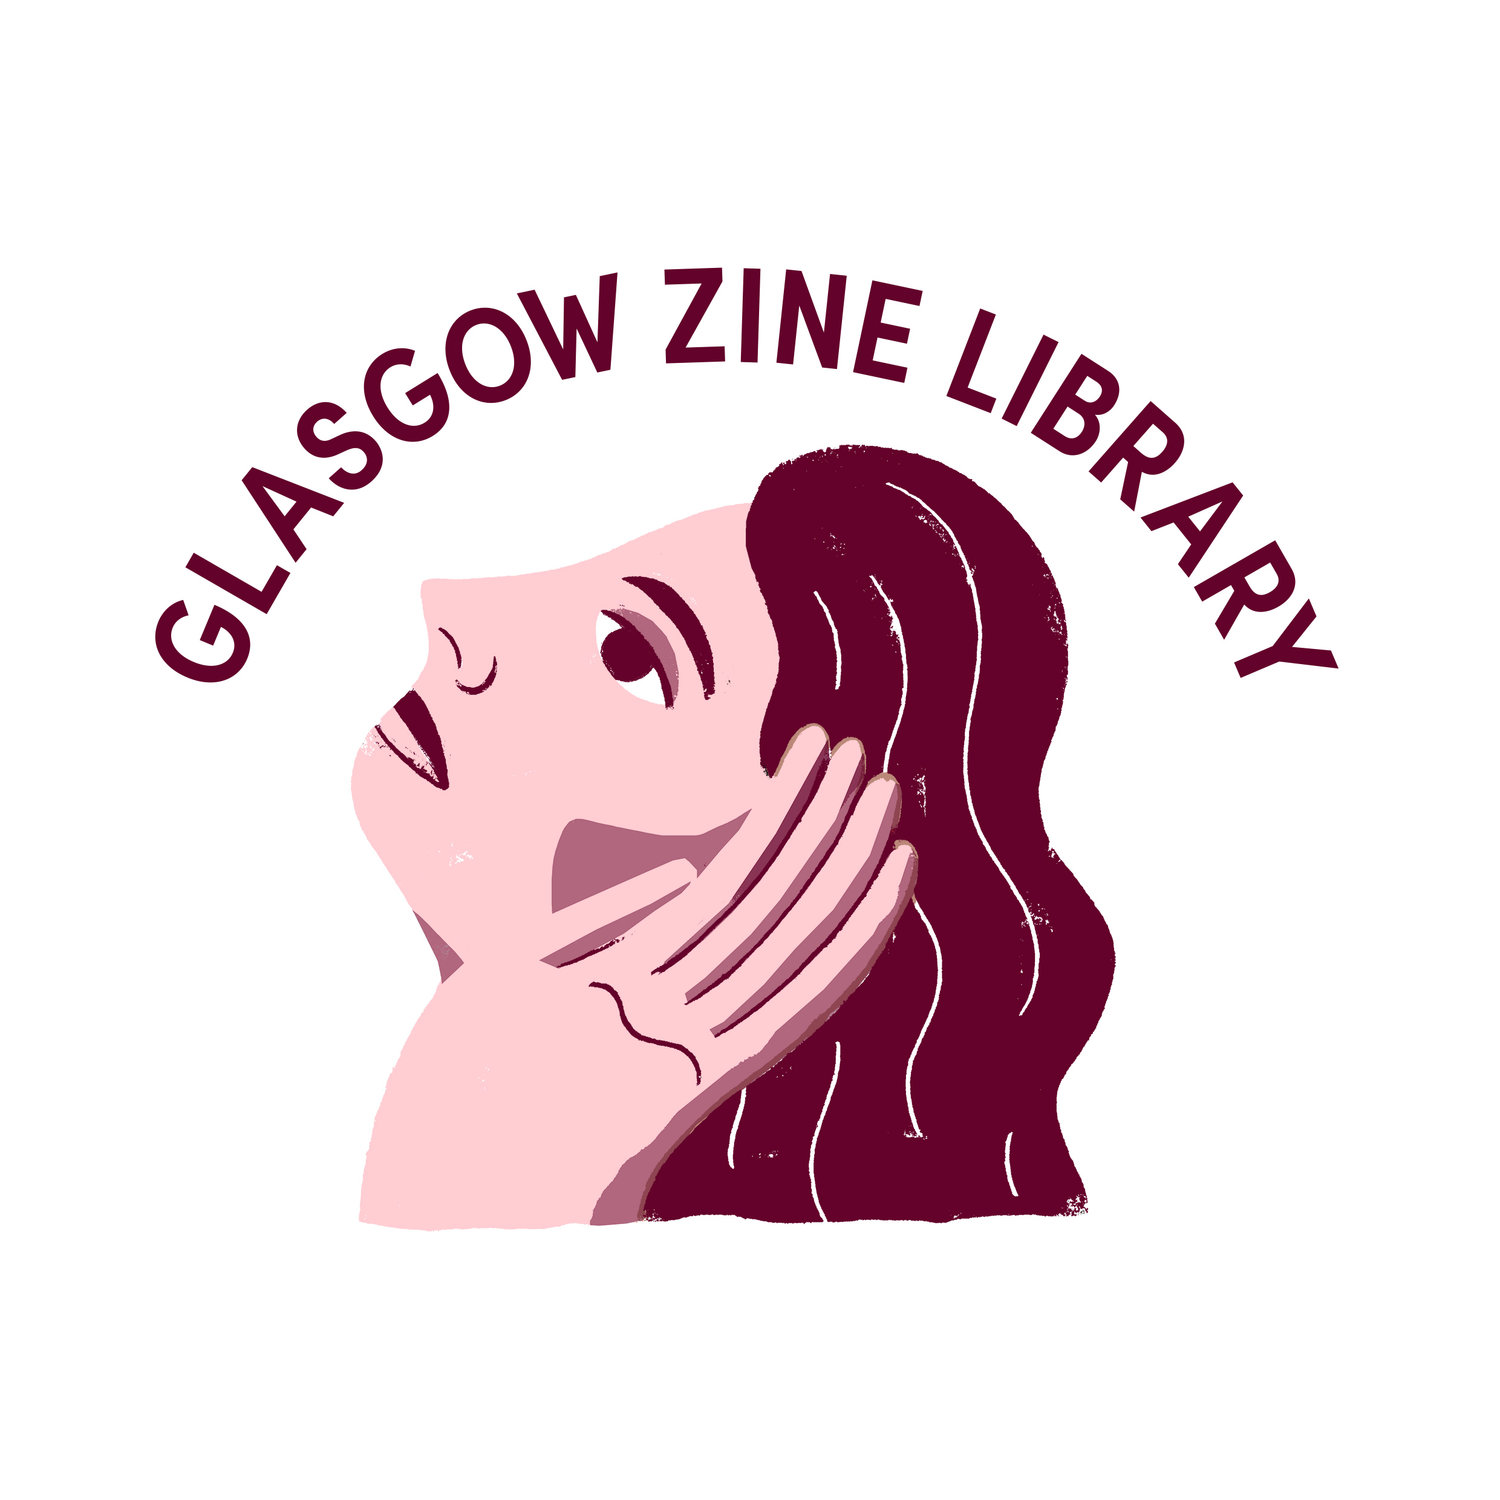 glasgow zine library